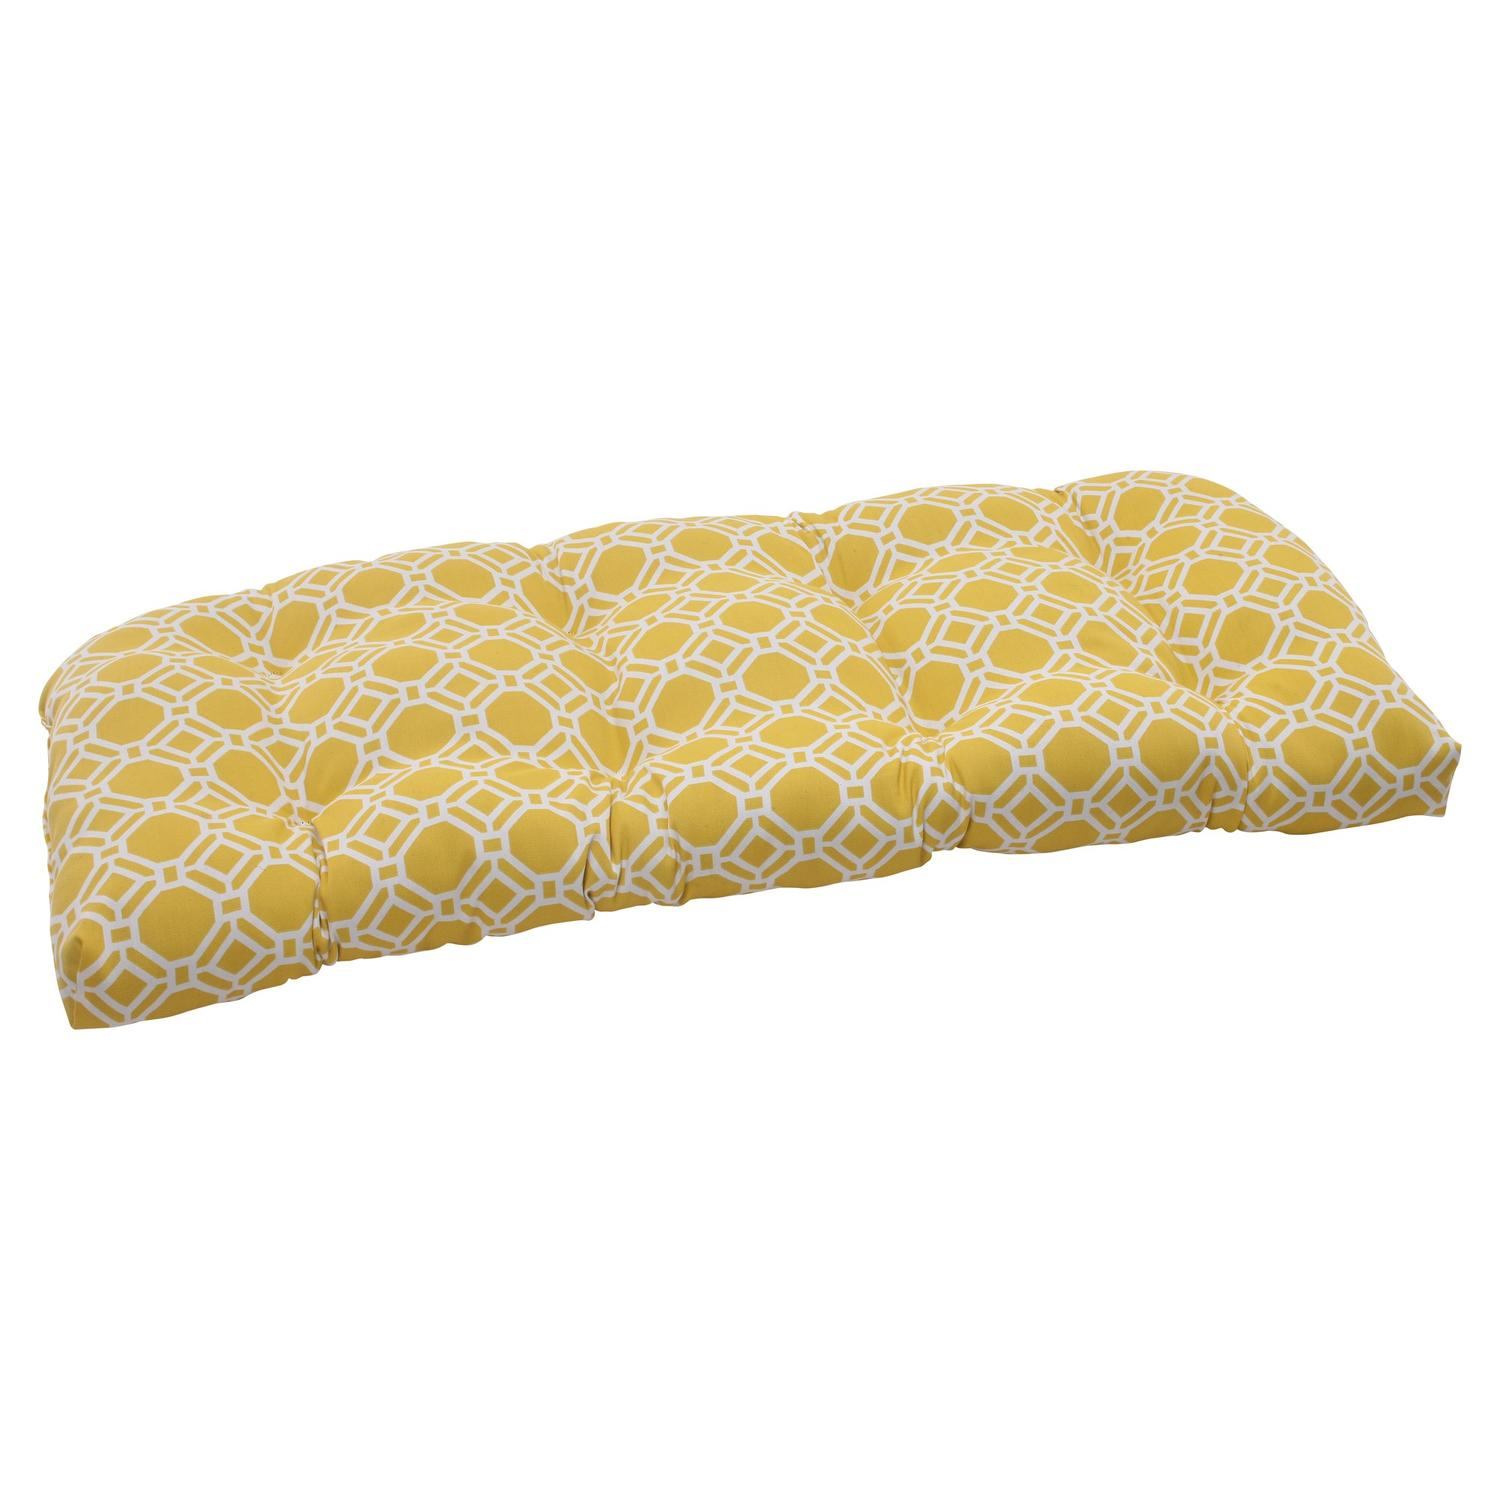 """44"""" Yellow & White Octagonal Chain Outdoor Patio Tufted Wicker Loveseat Cushion"""